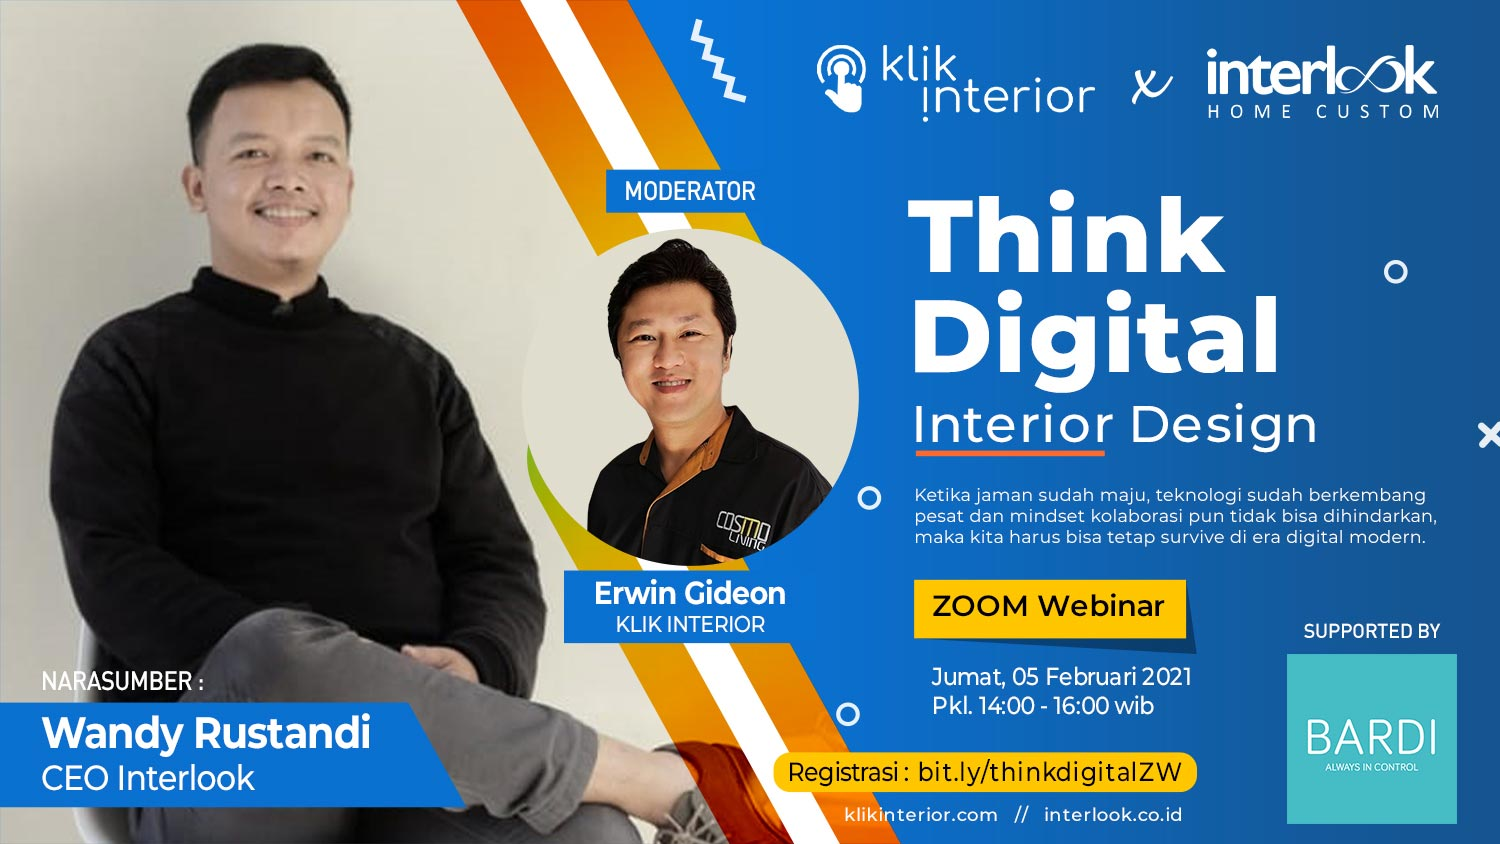 Think Digital Interior Design - Klik Interior x Interlook supported by BARDI Smart Home